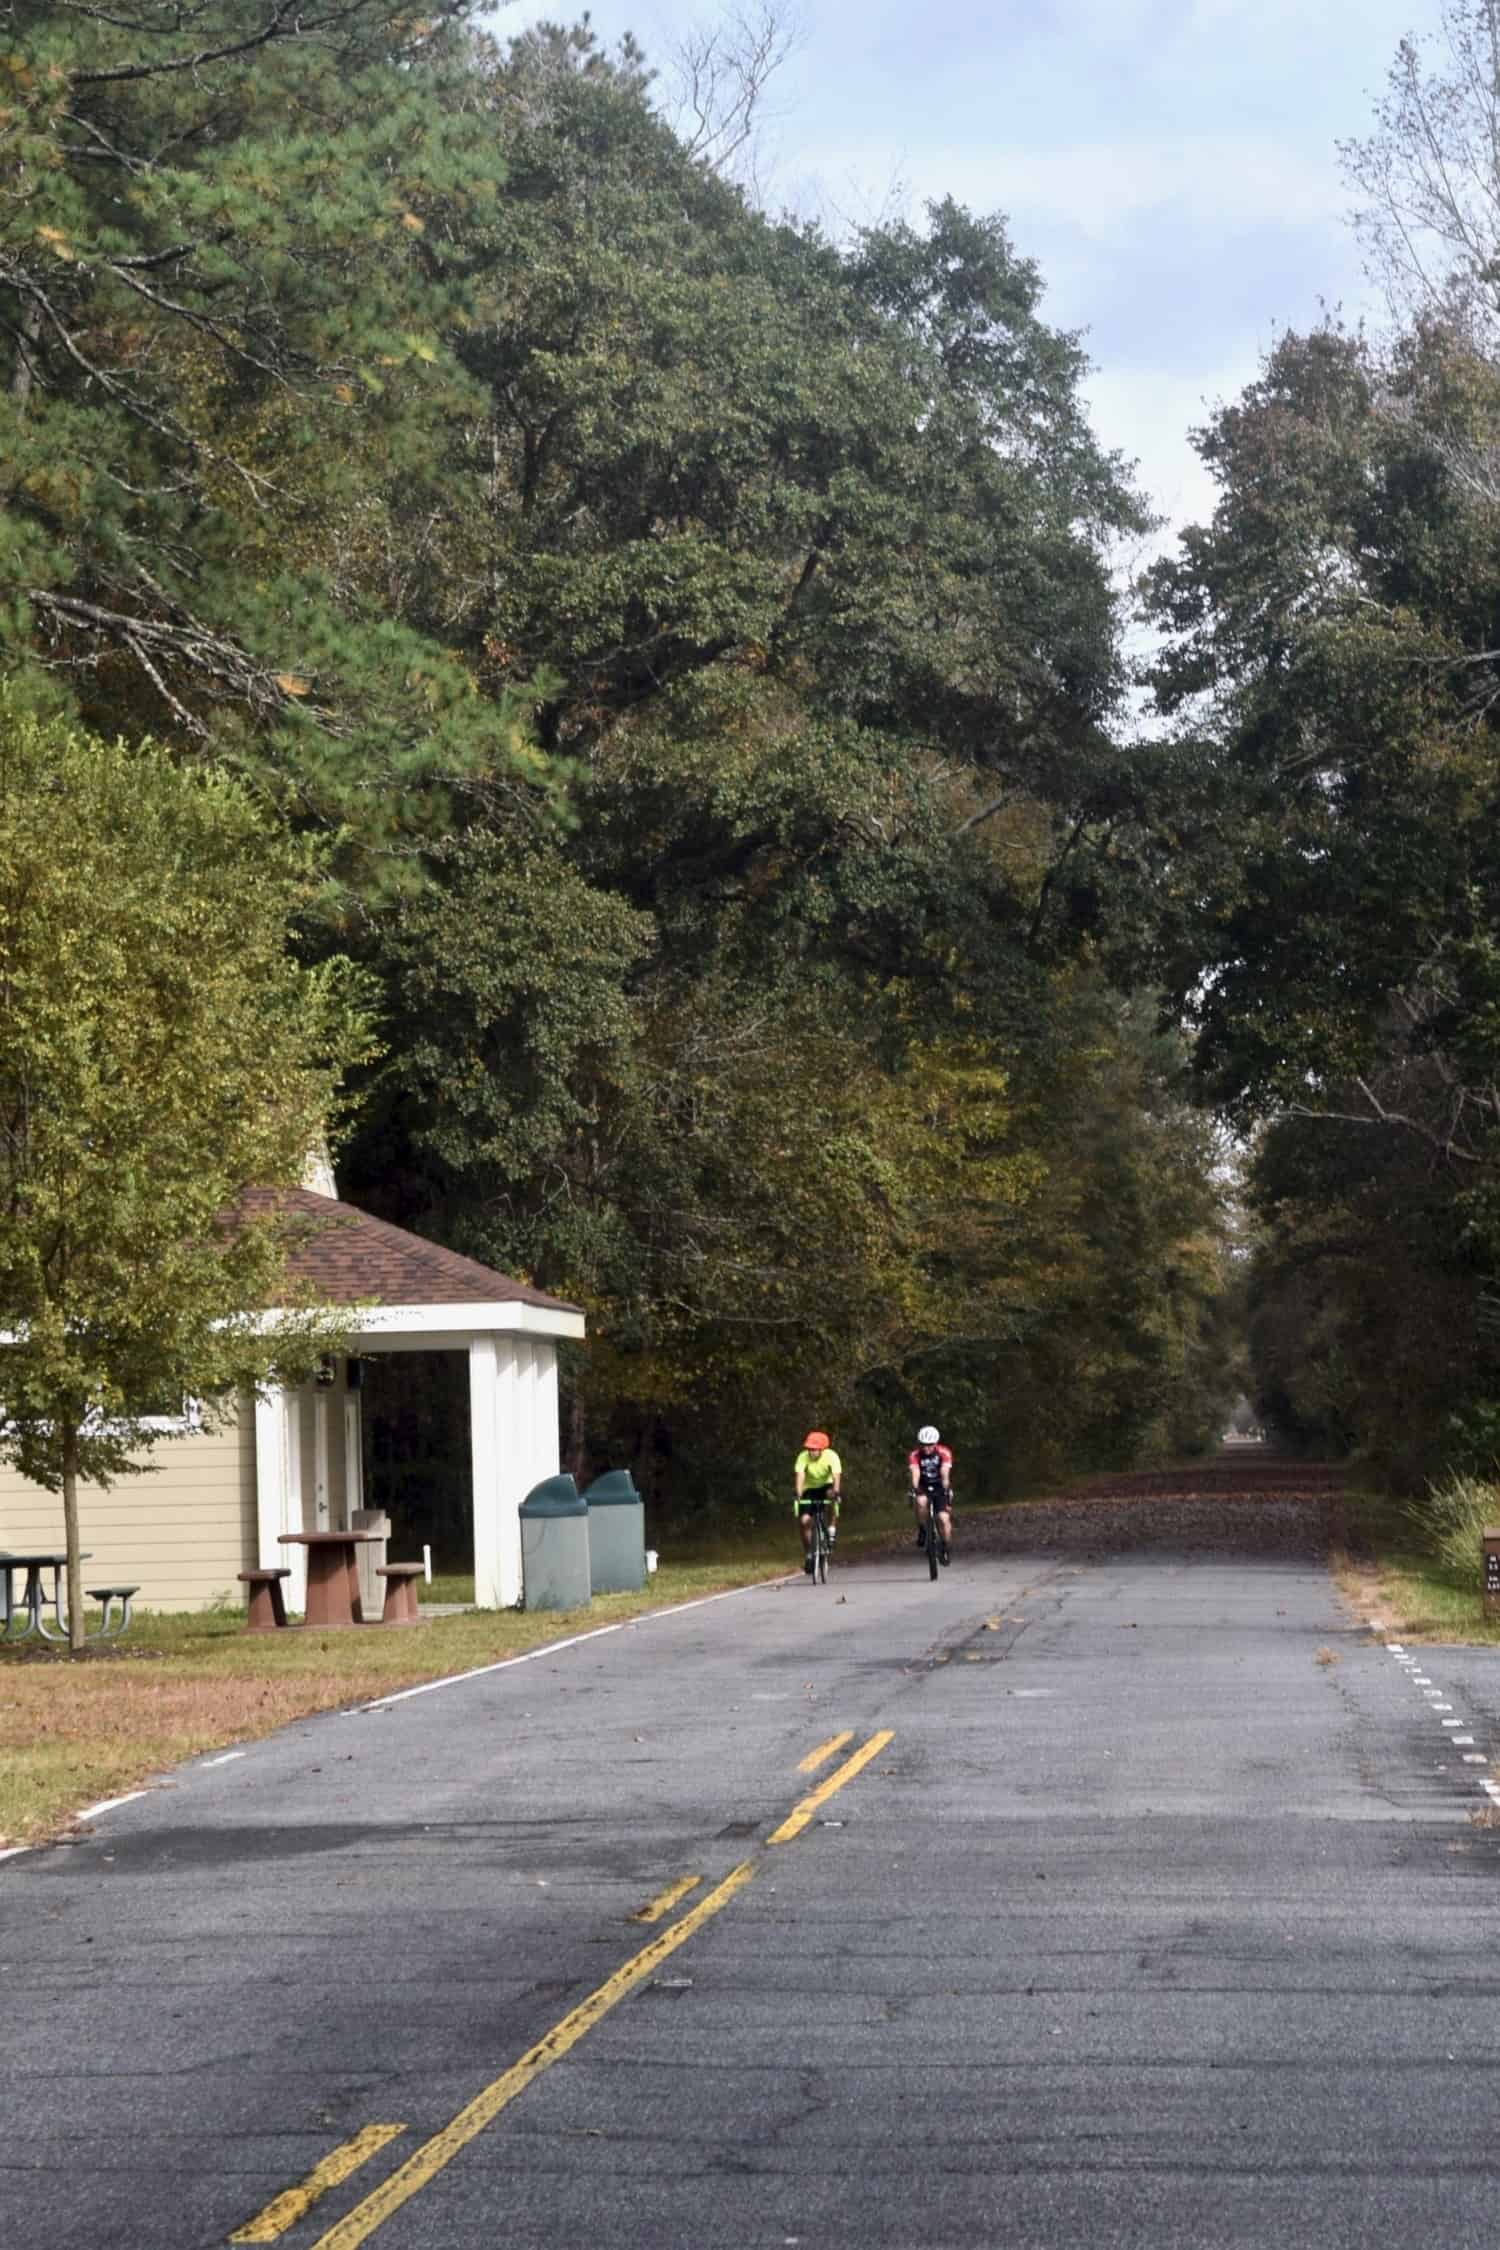 Bikes on Dismal Swamp path